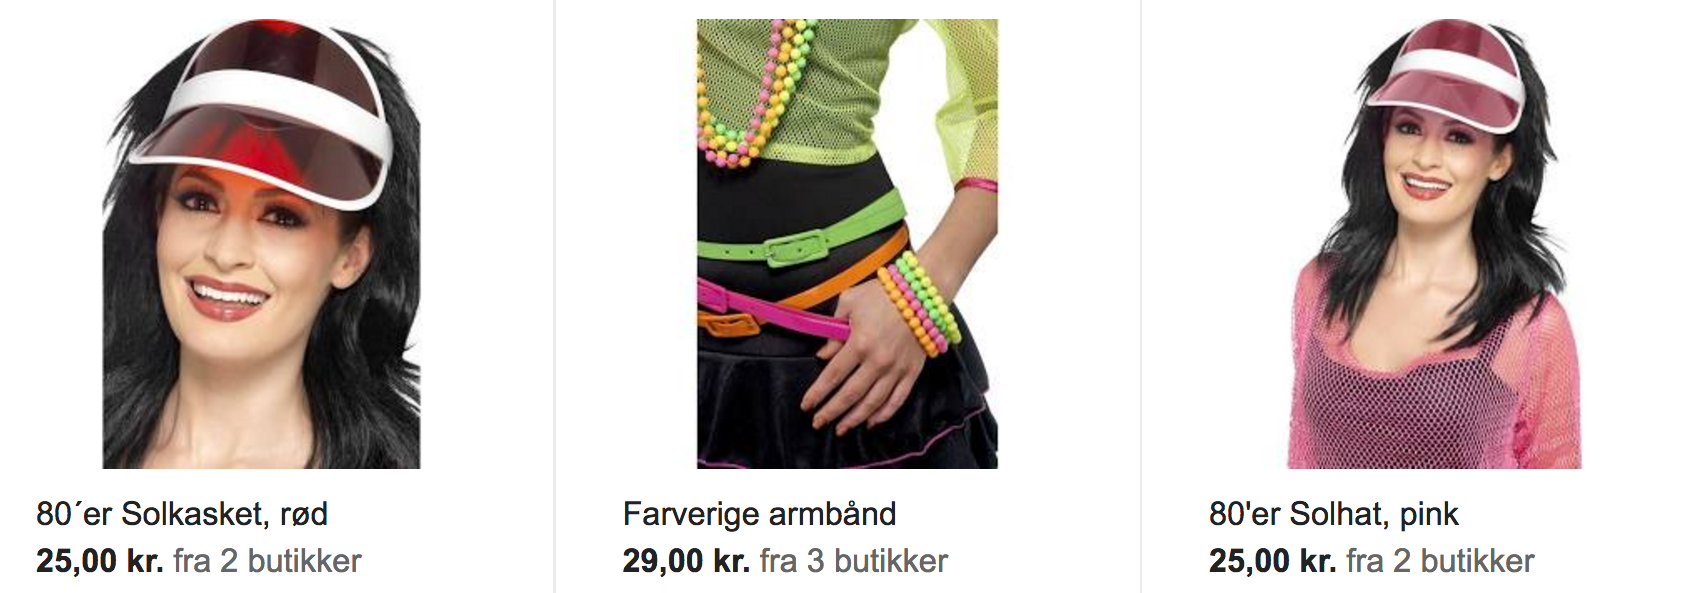 Google Shopping eksempel 1